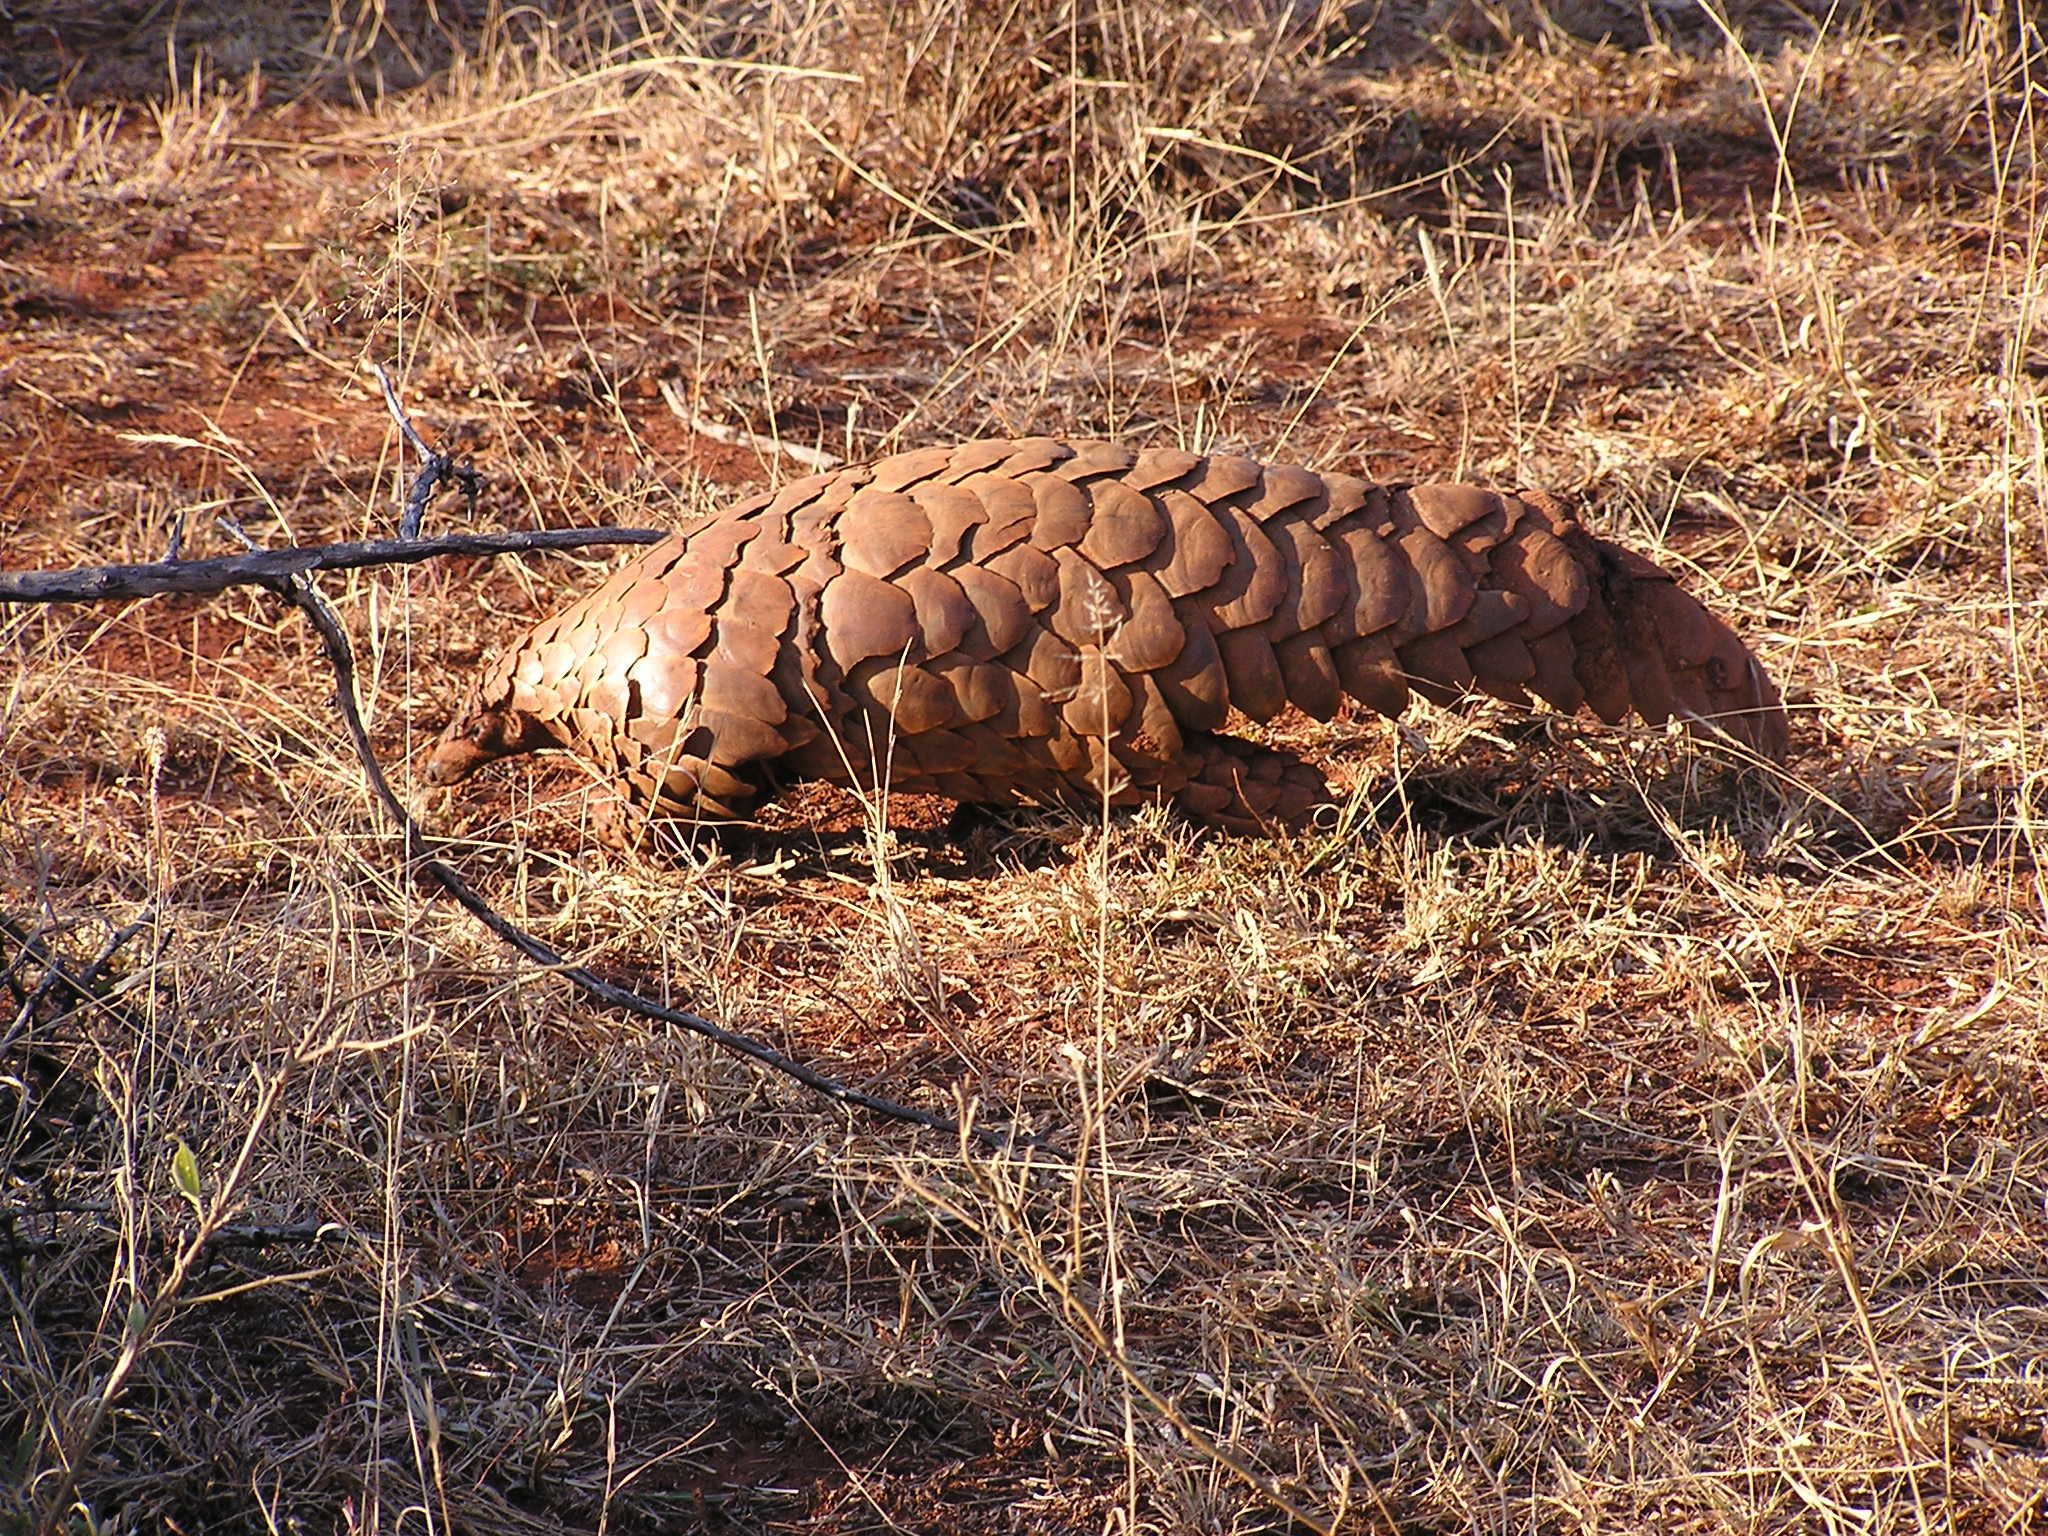 Pangolin (Manis temminckii) in South Africa